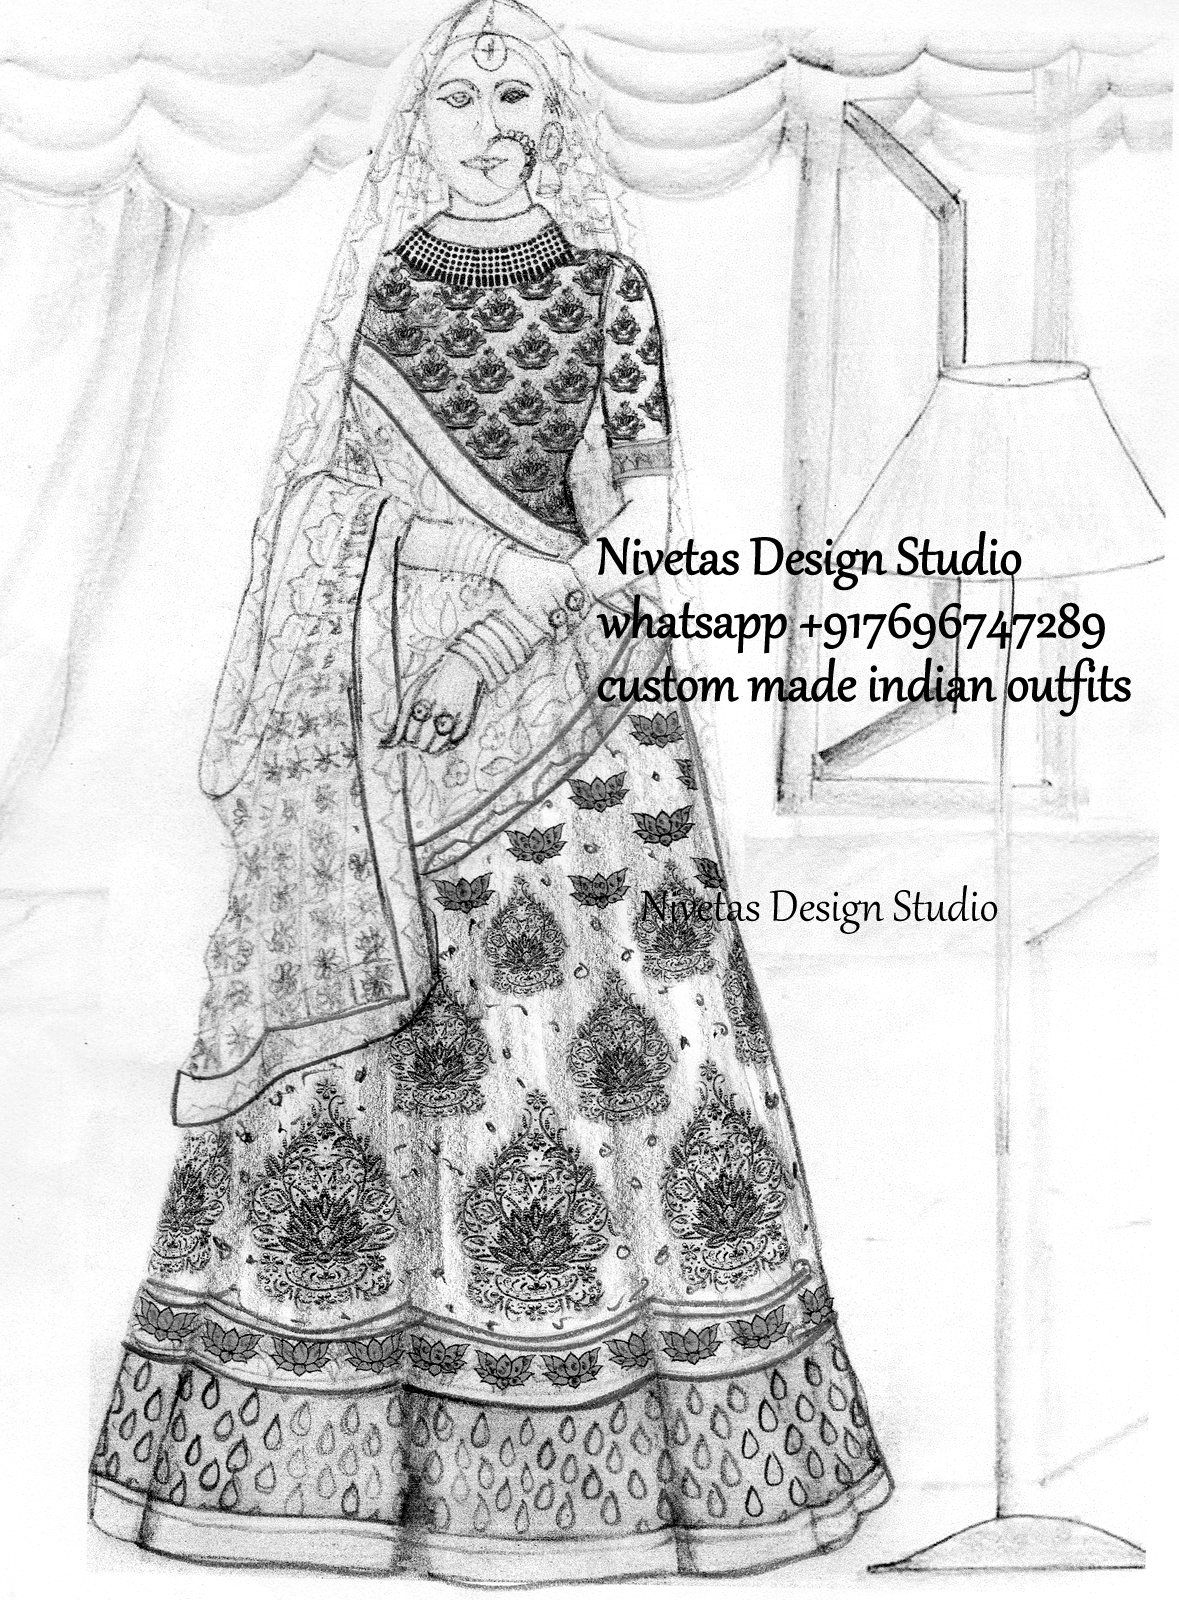 e747b442532 Custom made bridal lehenga nivetas queries nivetasfashion gmail whatsapp  also rh ar pinterest